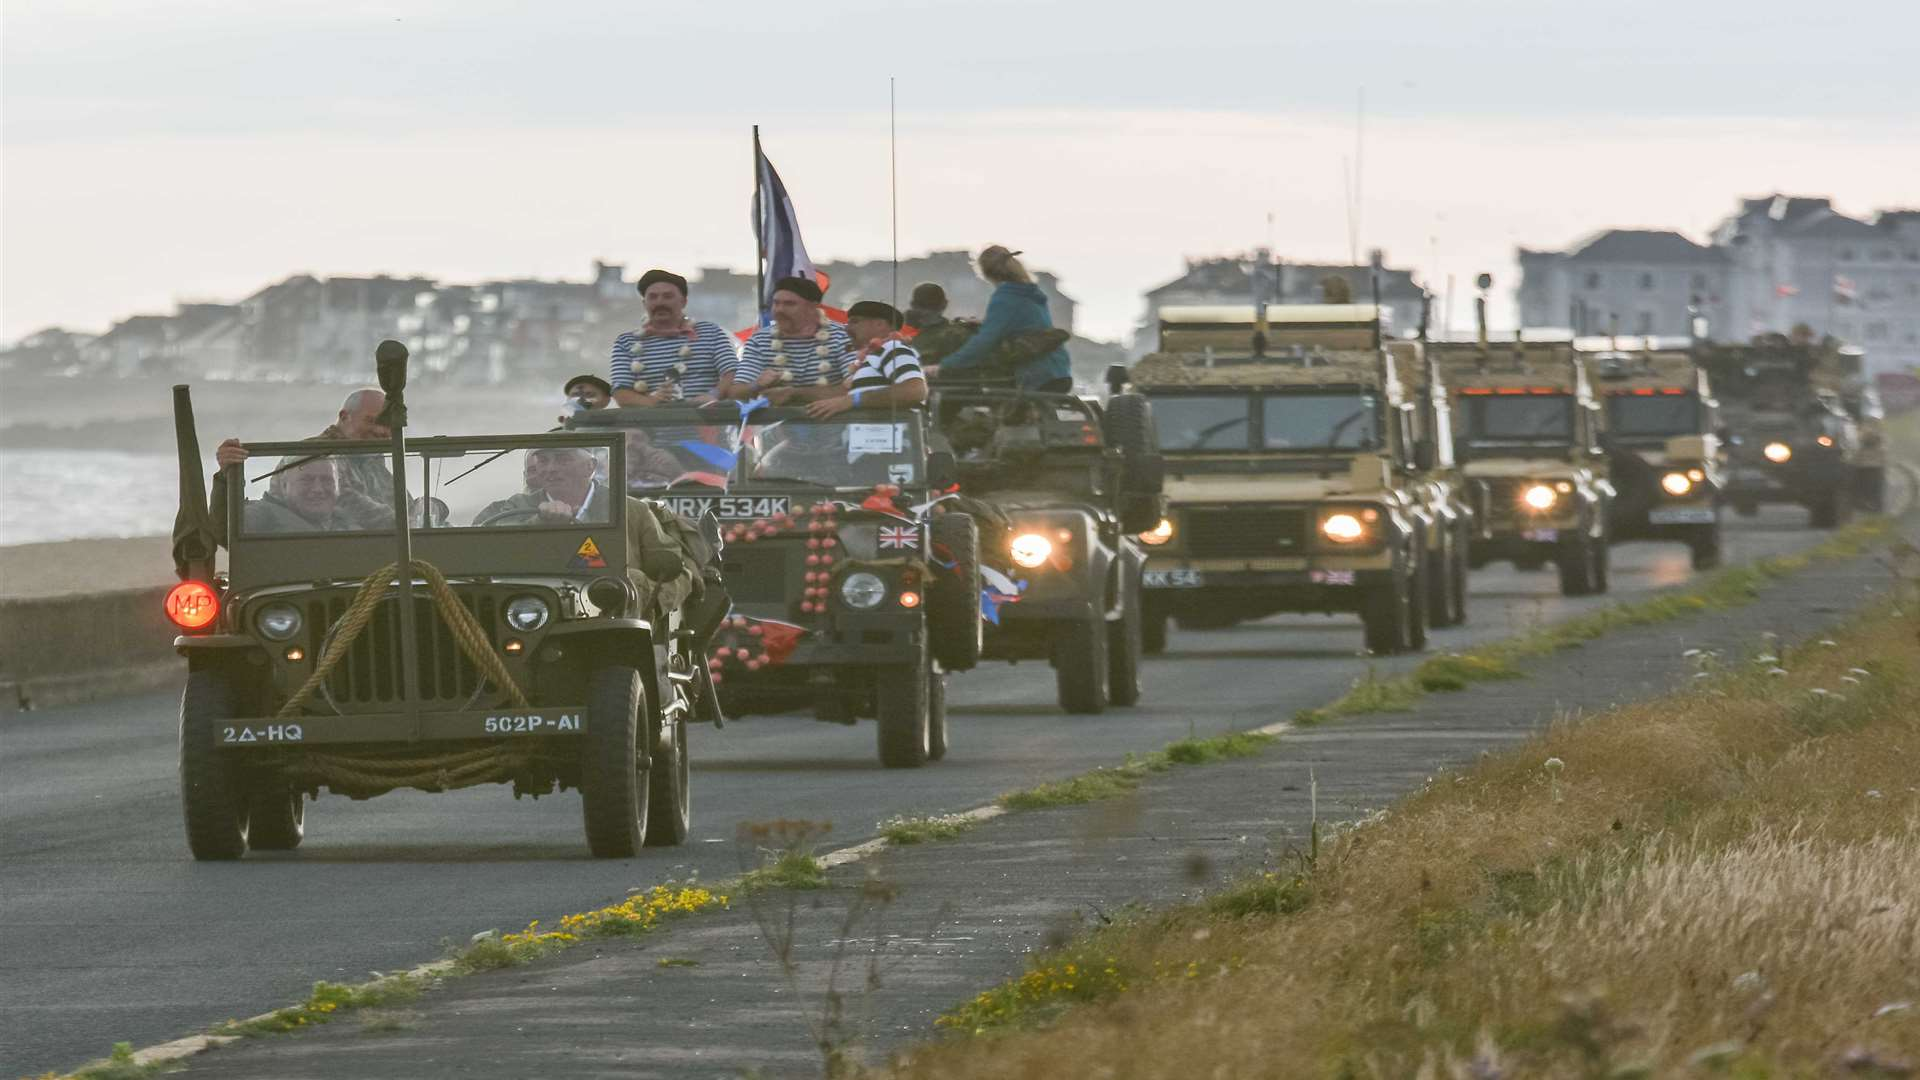 Vehicles on their way to the War and Peace Revival